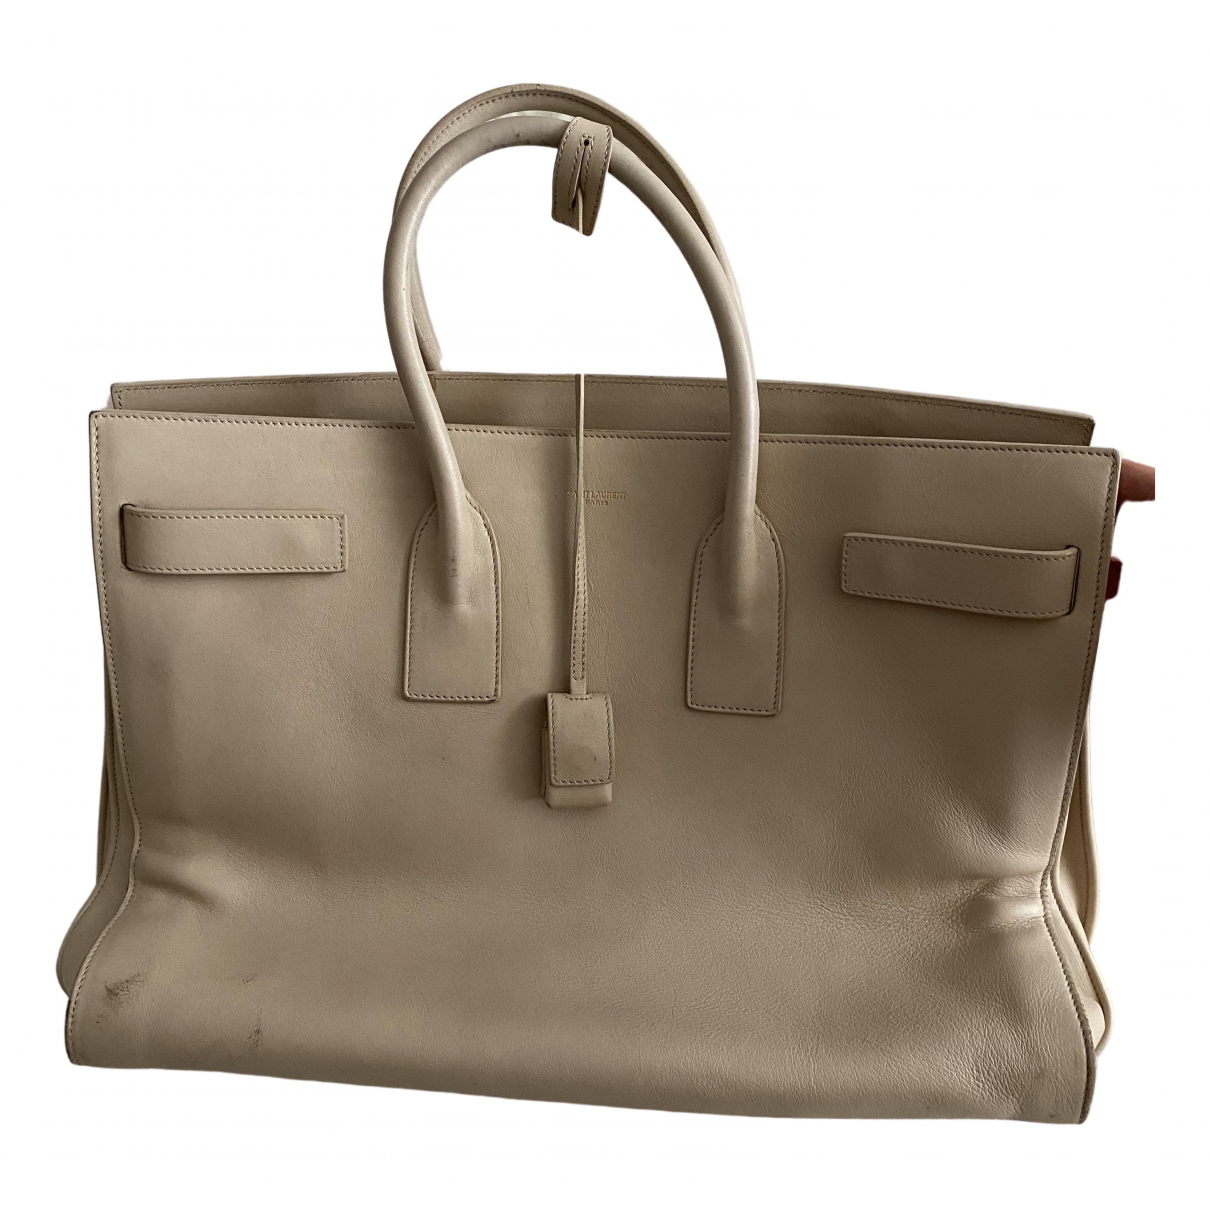 Saint Laurent Sac de Jour Beige Leather handbag for Women \N